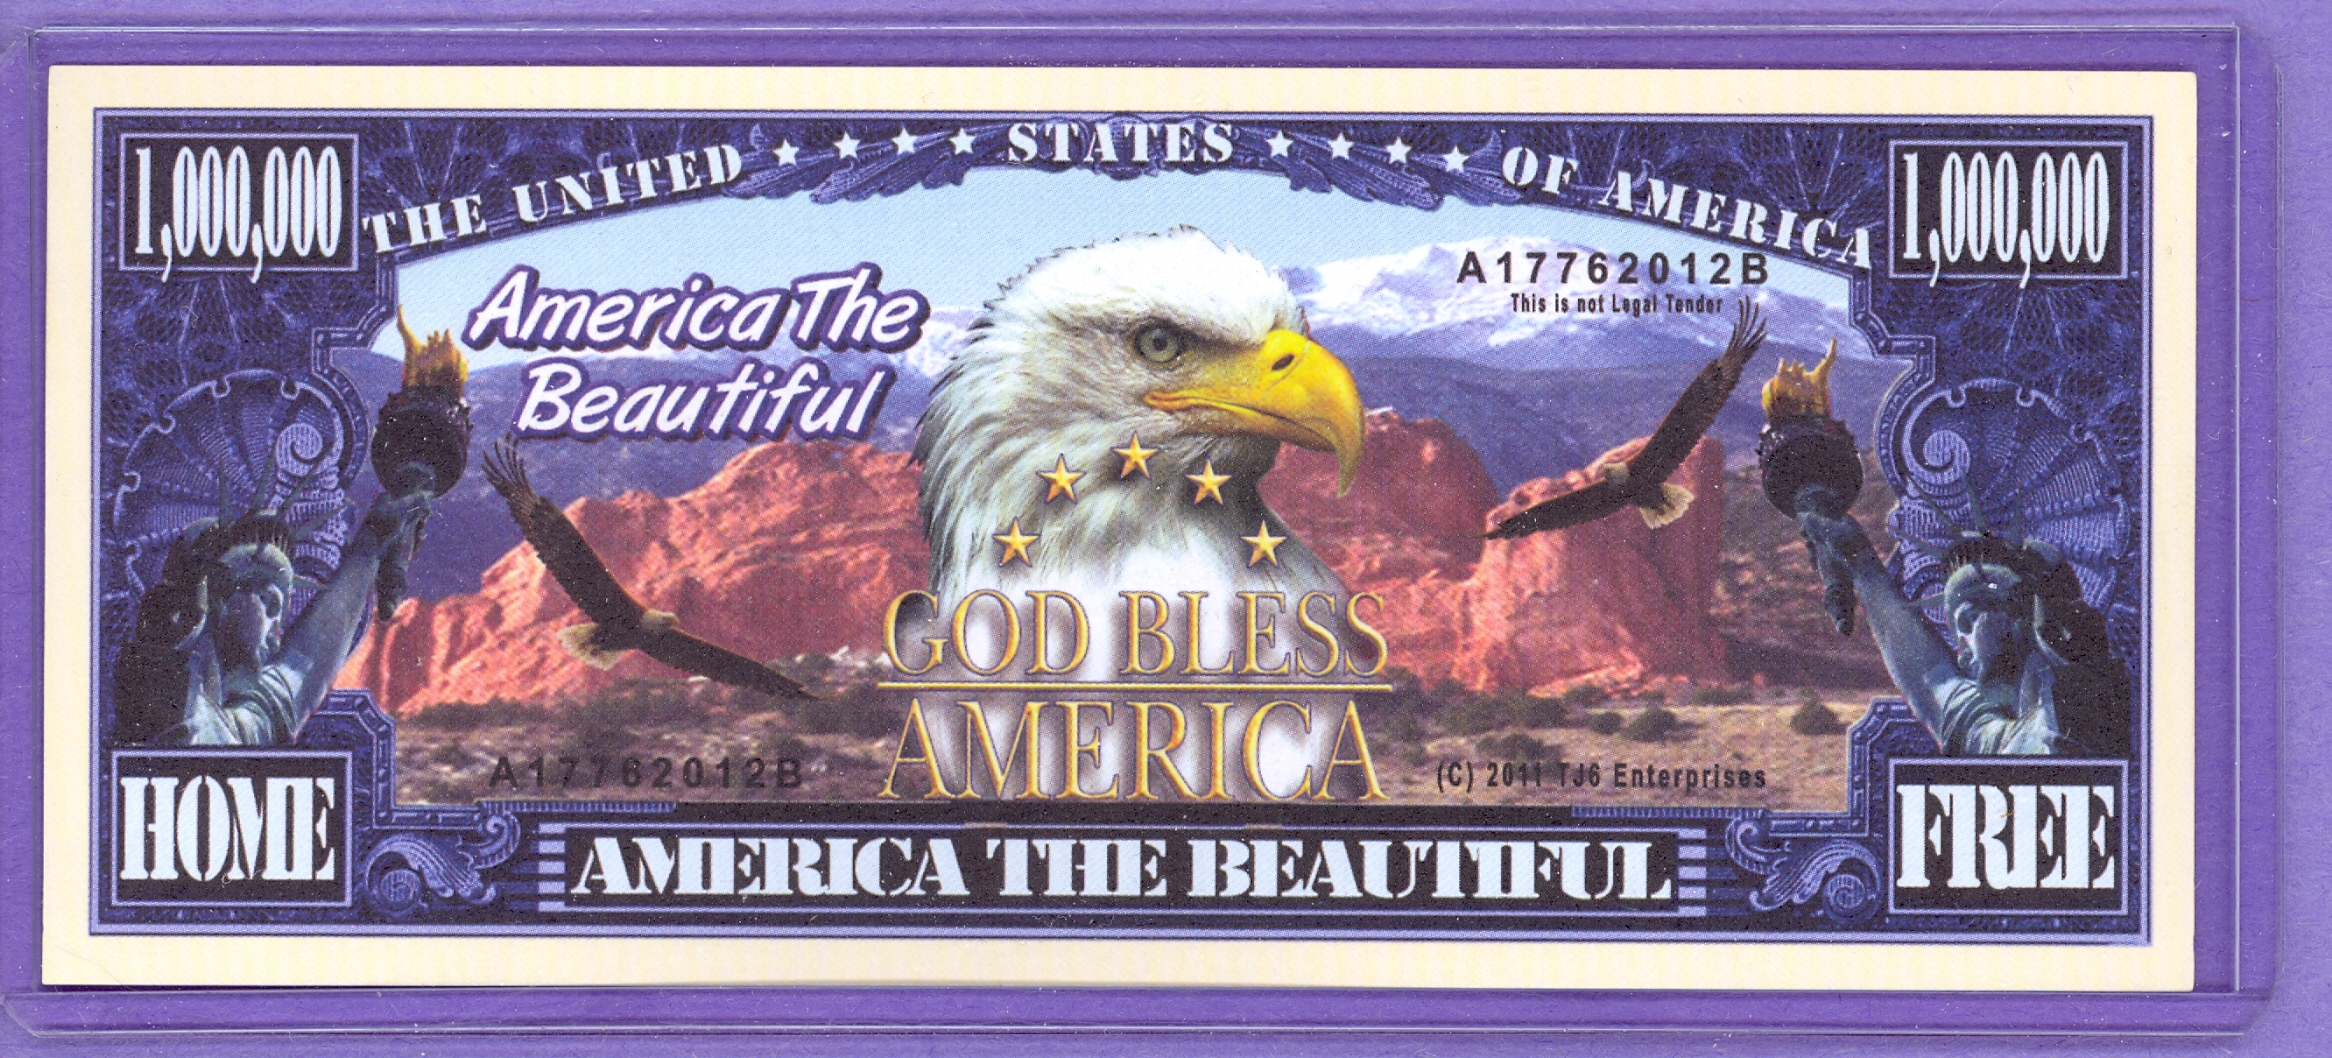 America The Beautiful $1,000,000 Novelty Note